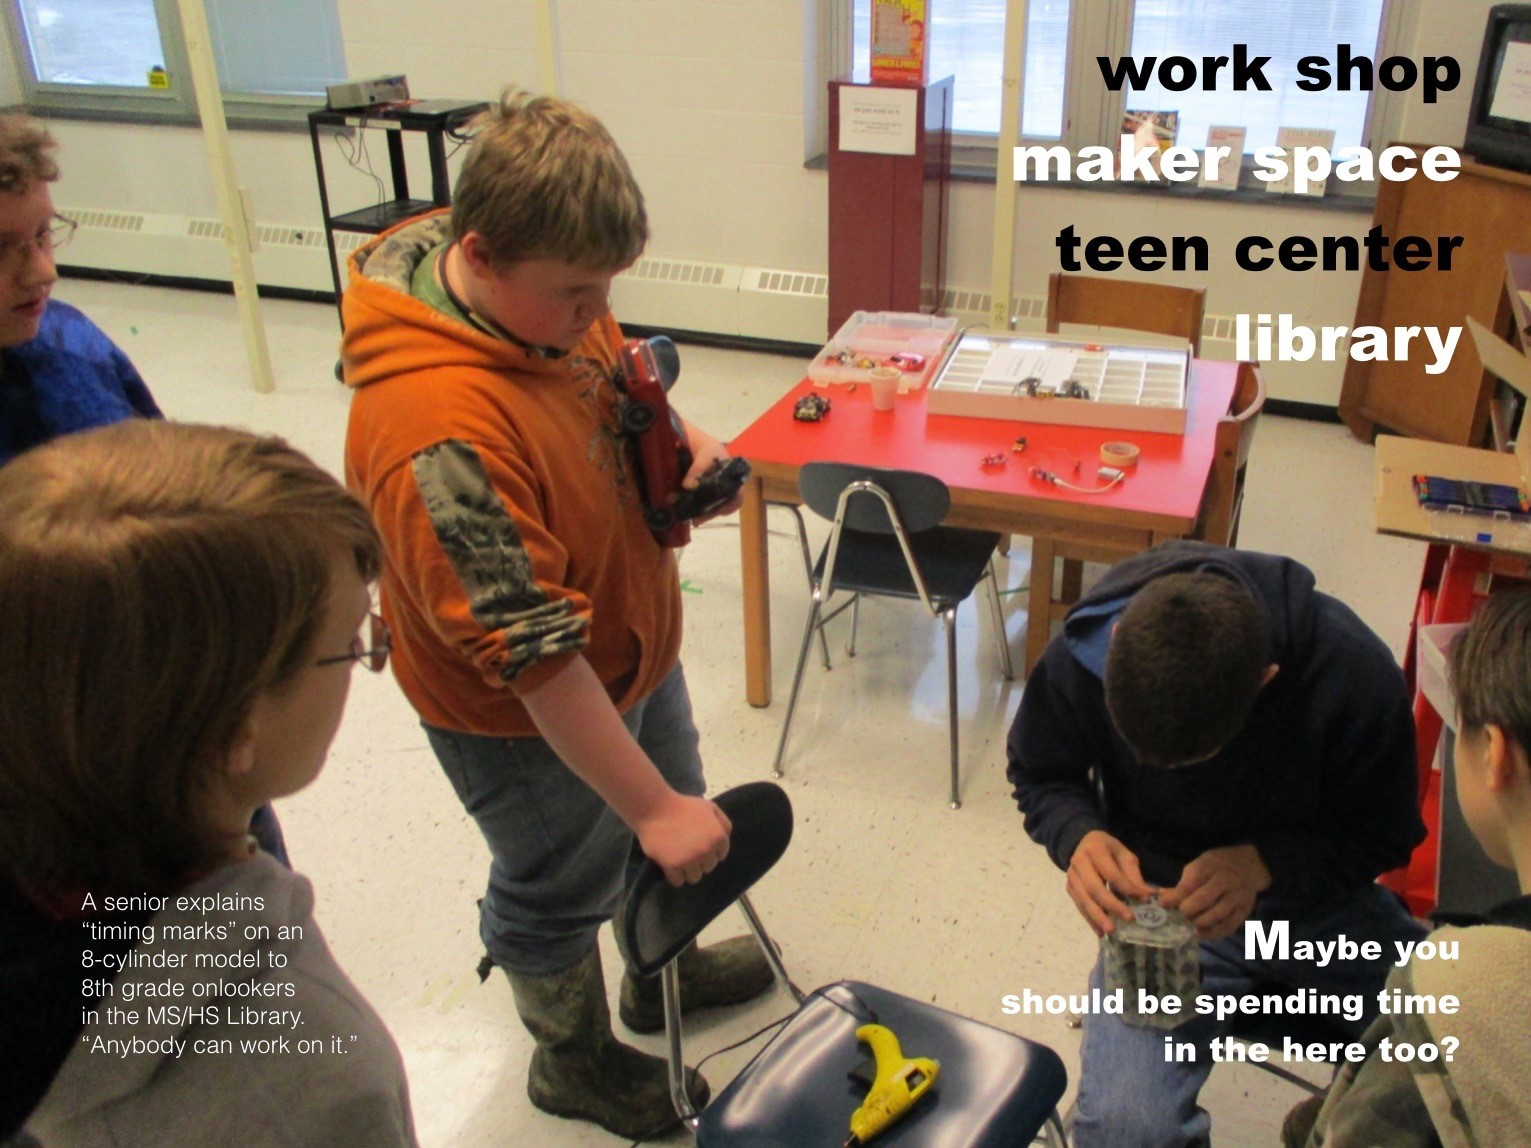 ACSLIB Poster: Team of students collaborating in MakerSpace.